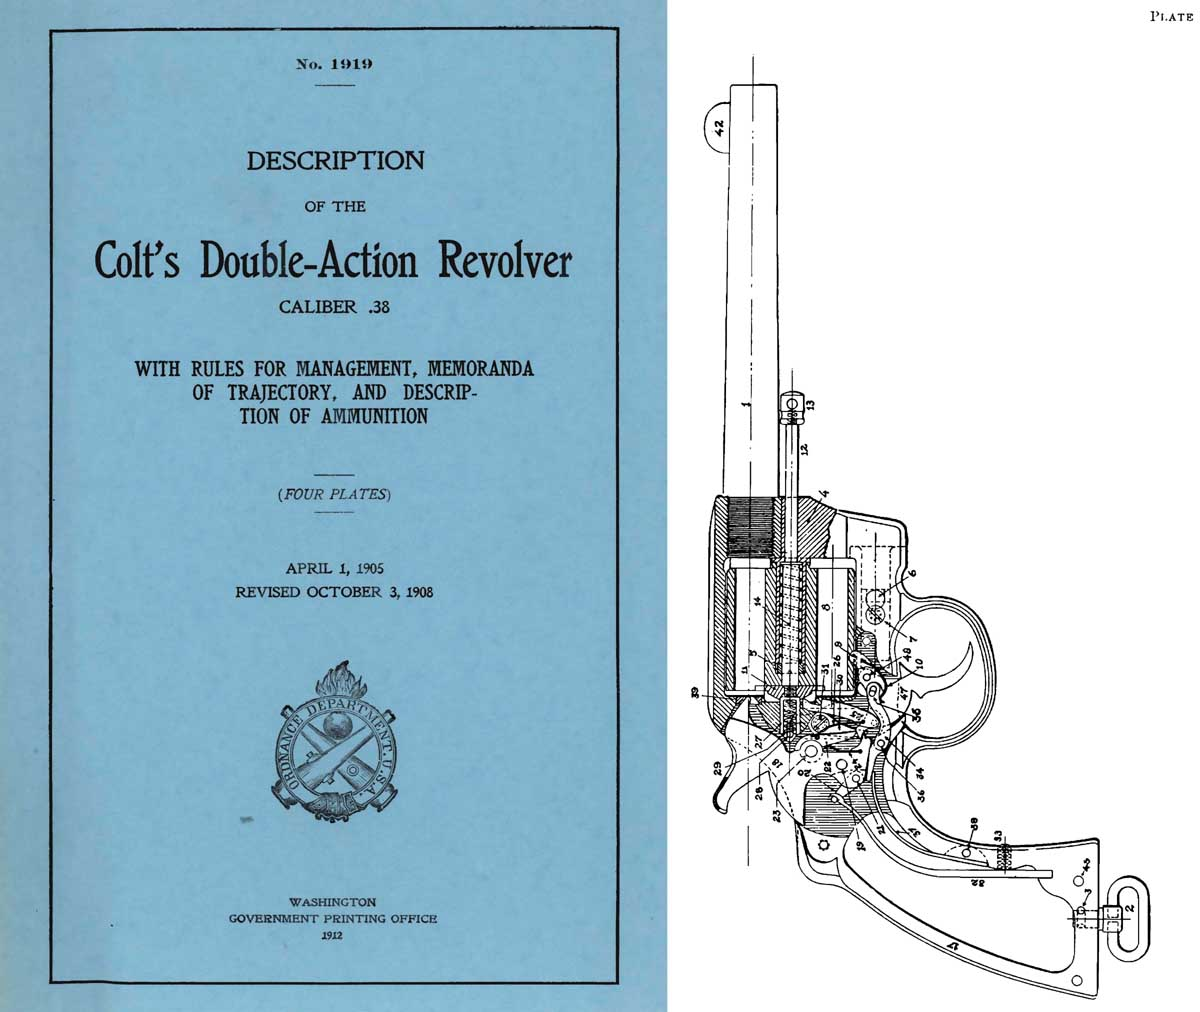 Colt's Double-Action Revolver .38 1912- GPO Description of- Manual